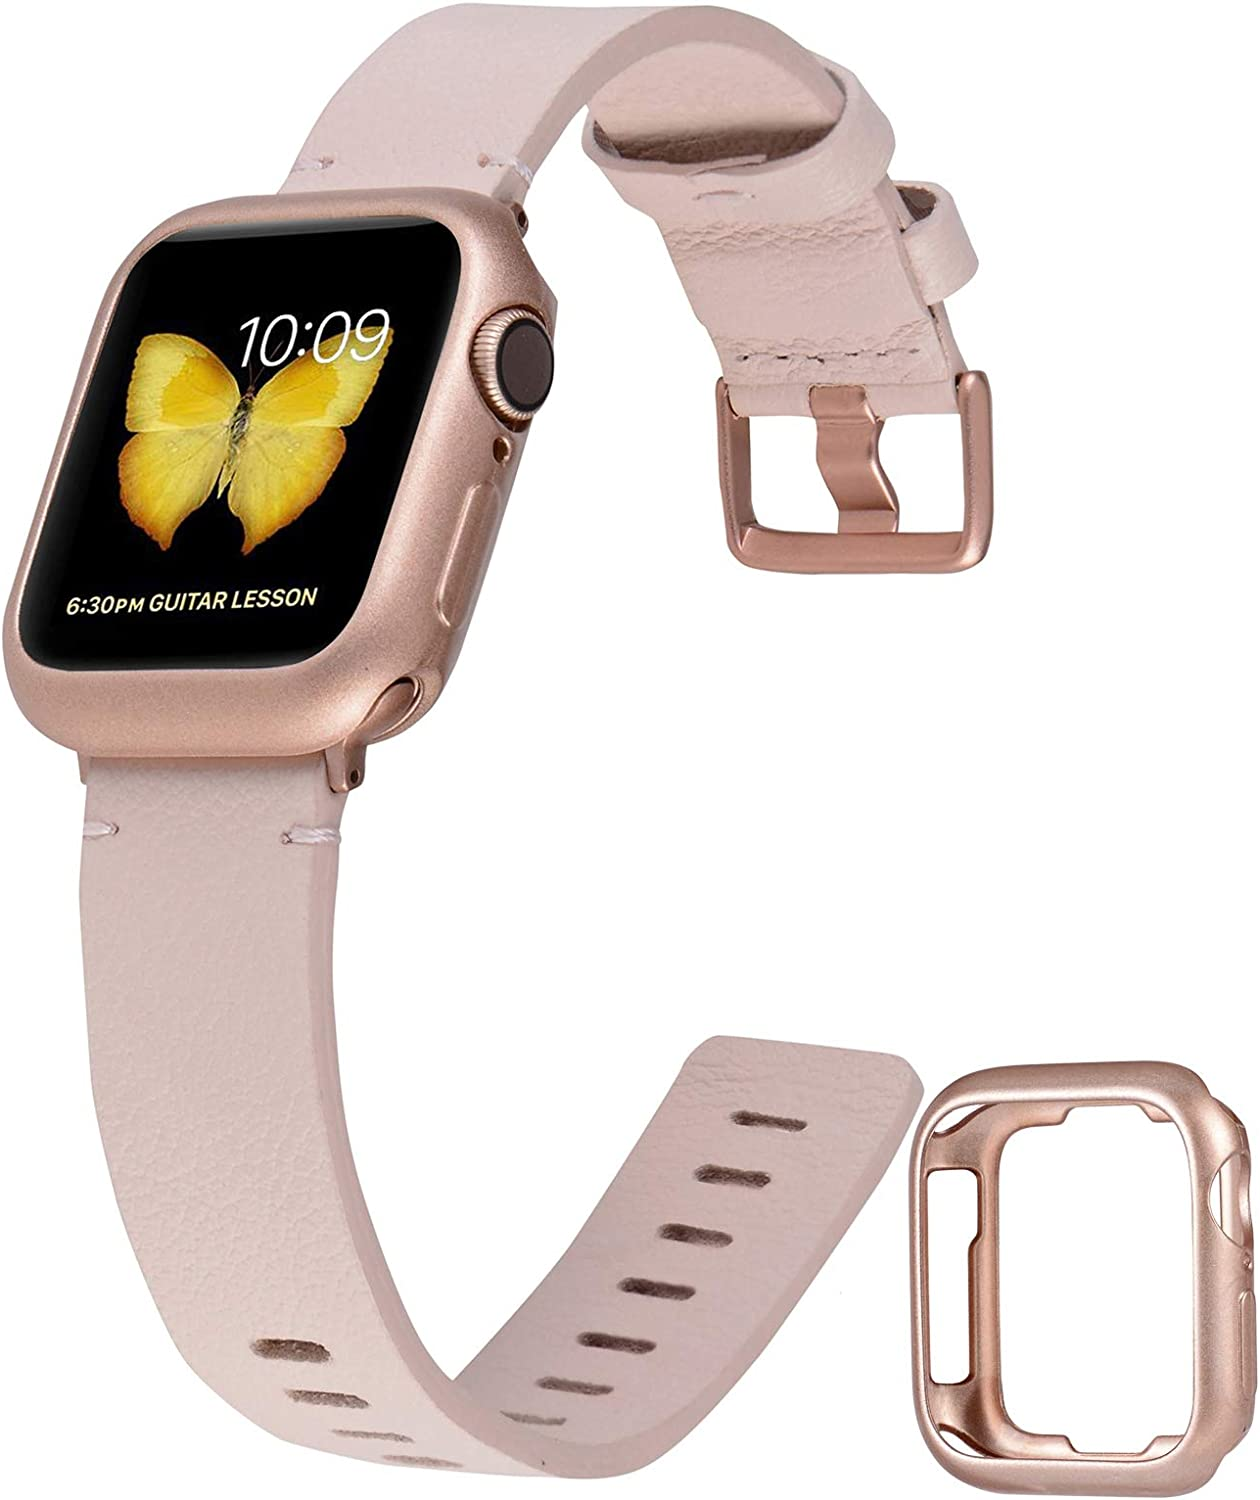 JFdragon Leather Bands Compatible with Apple Watch 38mm 40mm 42mm 44mm Womens Girls Boys Mens Top Grain Leather Strap for iWatch SE/Series 6/5/4/3/2/1